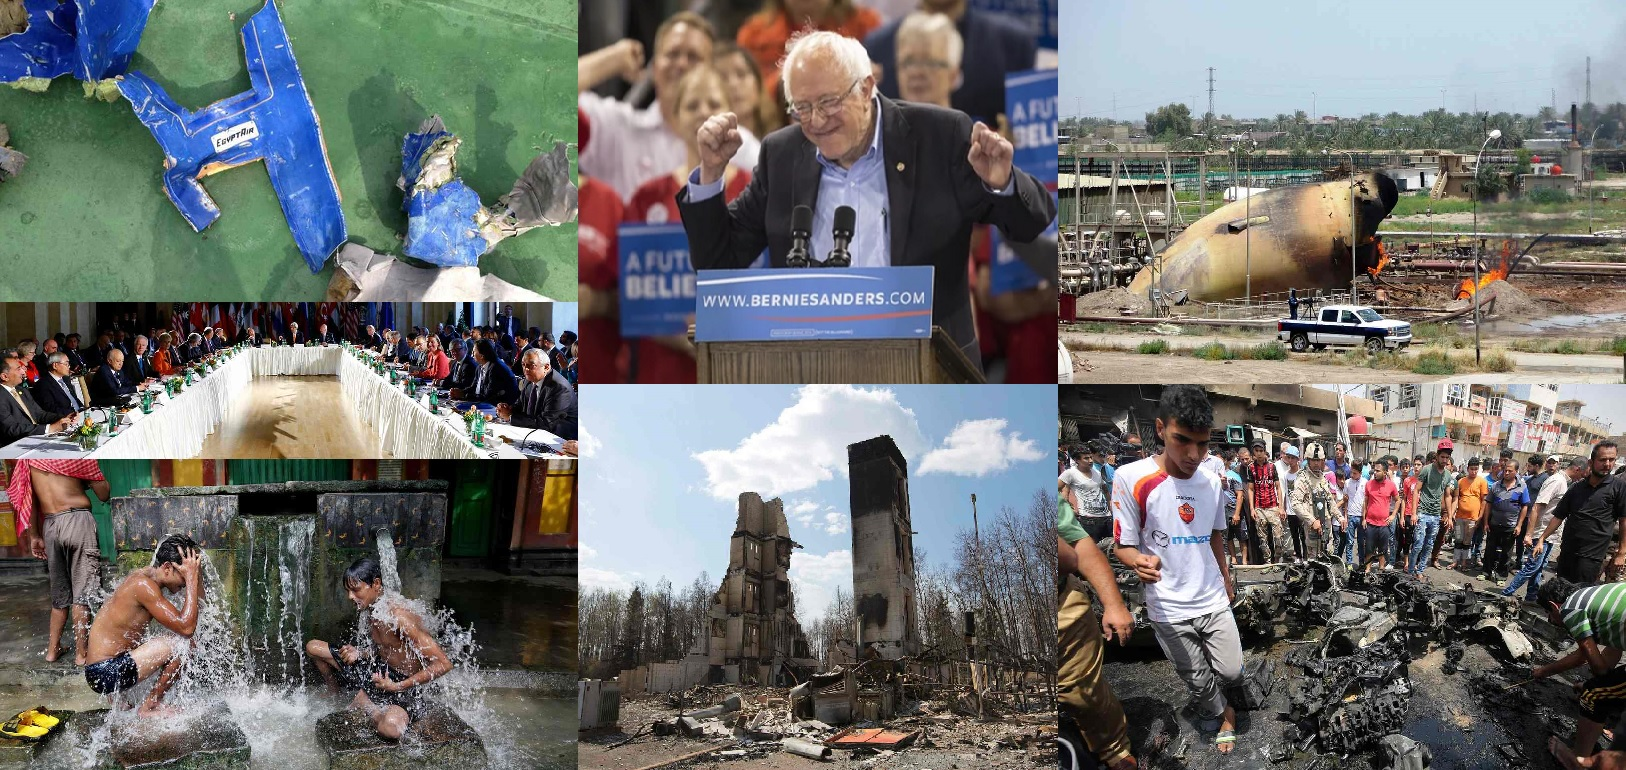 From left to right: In the top row, debris from the crashed EgyptAir flight, U.S. Sen. Bernie Sanders after his victory in Oregon, and a bombed gas plant in Baghdad. In the middle row, world leaders meeting in Vienna over Syria conflict. In the bottom row, two Indian boys under the water to cool their bodies from the record heat, ruins in Canada from the raging wildfire, and people on the site of a car explosion in Baghdad. Cover credit: The Guardian (collage)